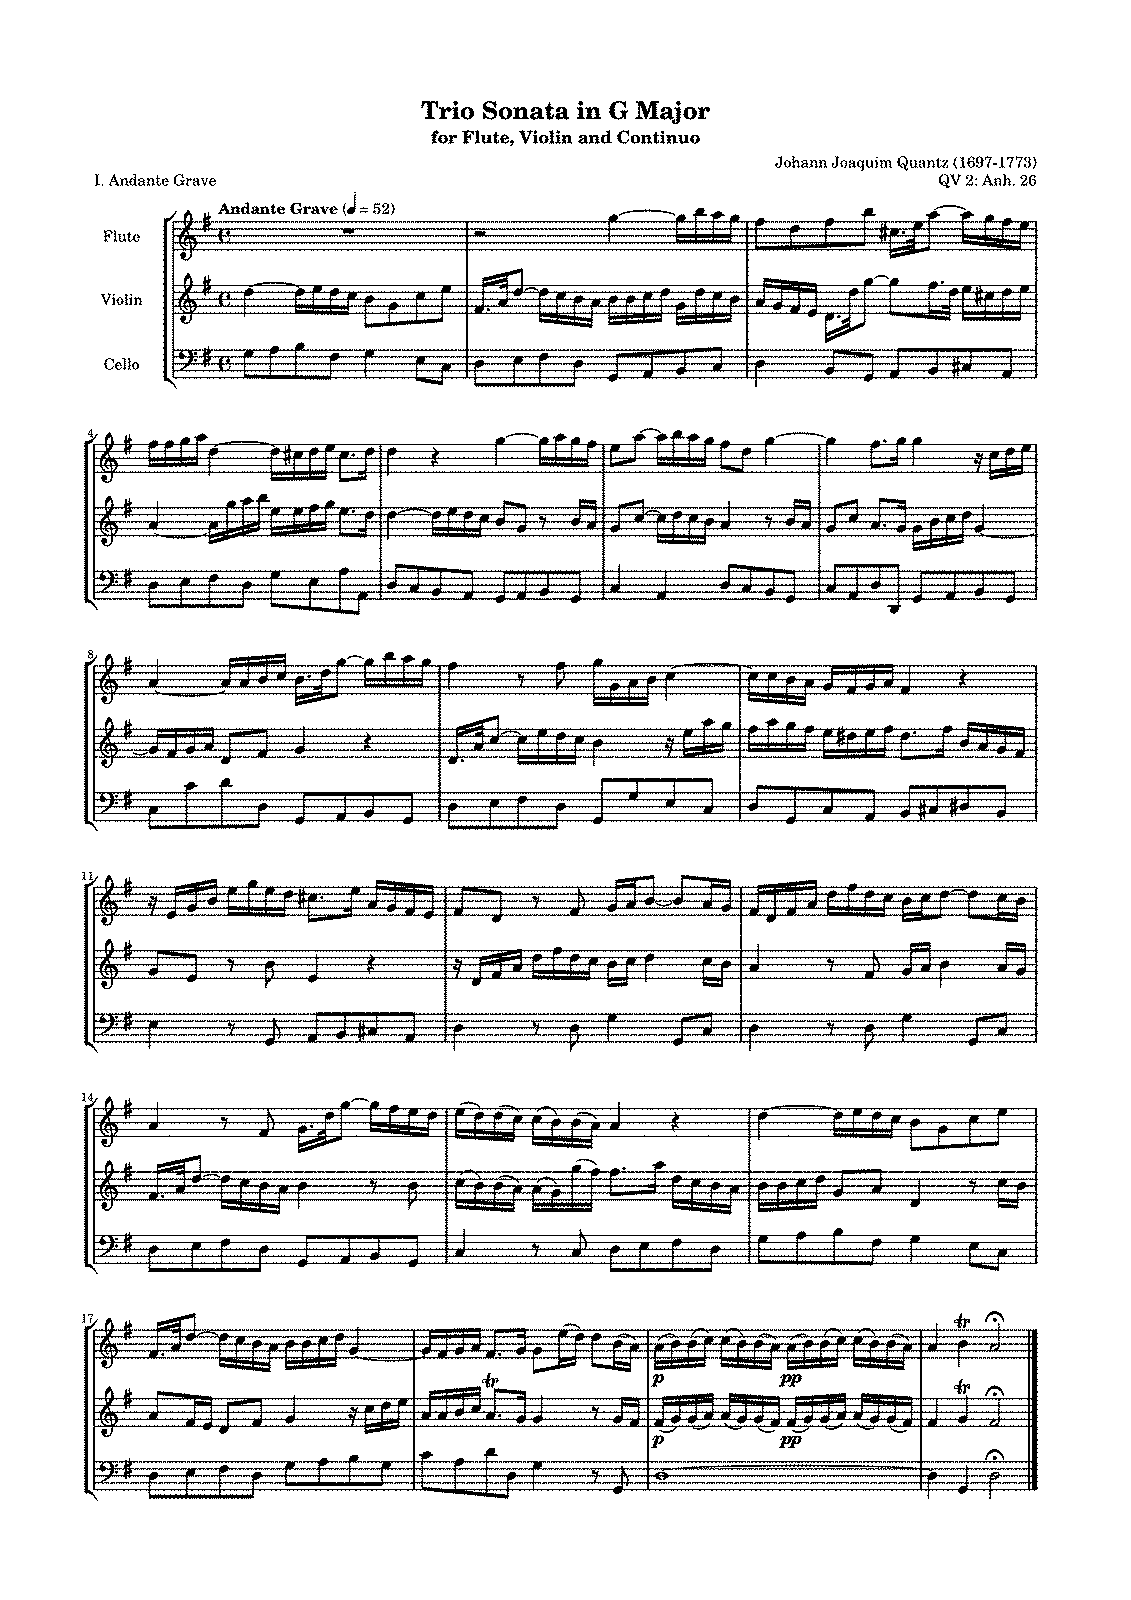 PMLP112935-Quantz Trio Sonata in G Major - Score.pdf